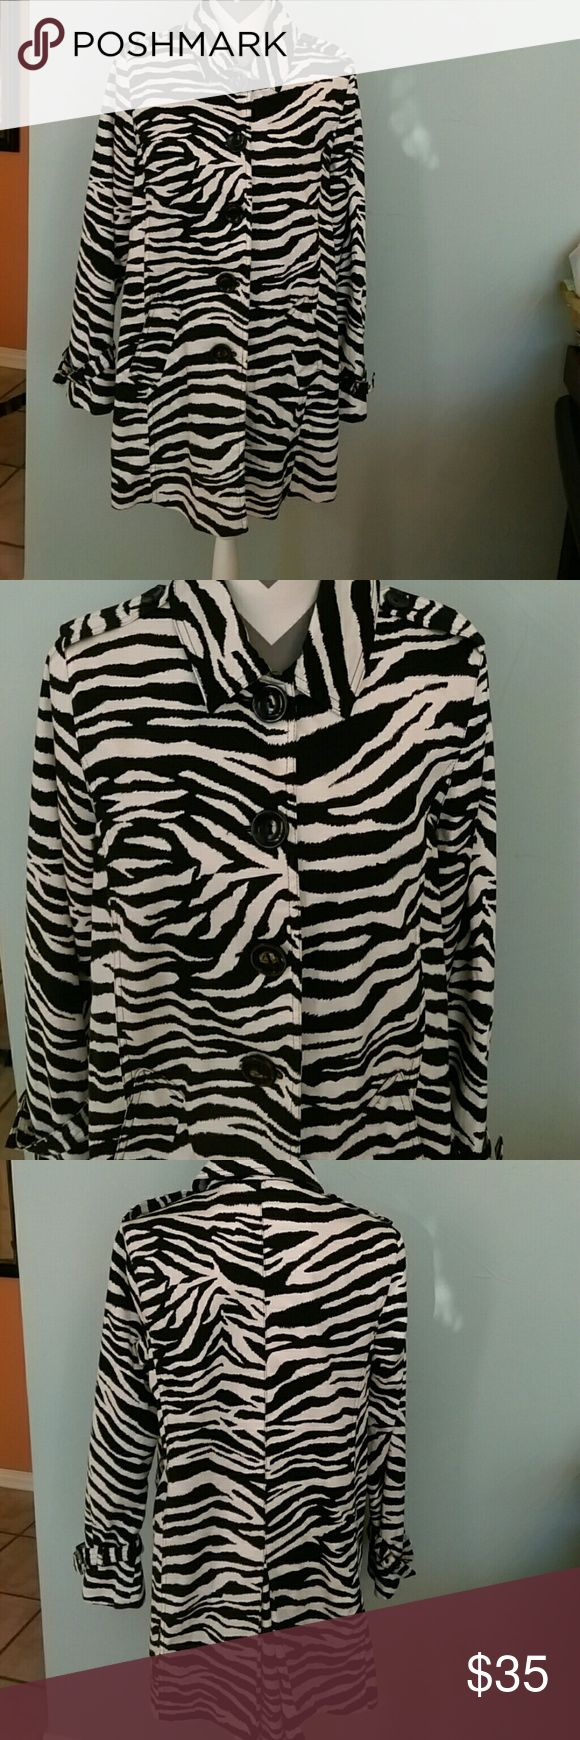 Appraisal black tiger print trench coat Appraisal black zebra print trench coat   Two front pockets  With a missing belt  Material 97% Cotton 3% Spandex Lining 100% Polyester  Made in China Appraisal Jackets & Coats Trench Coats